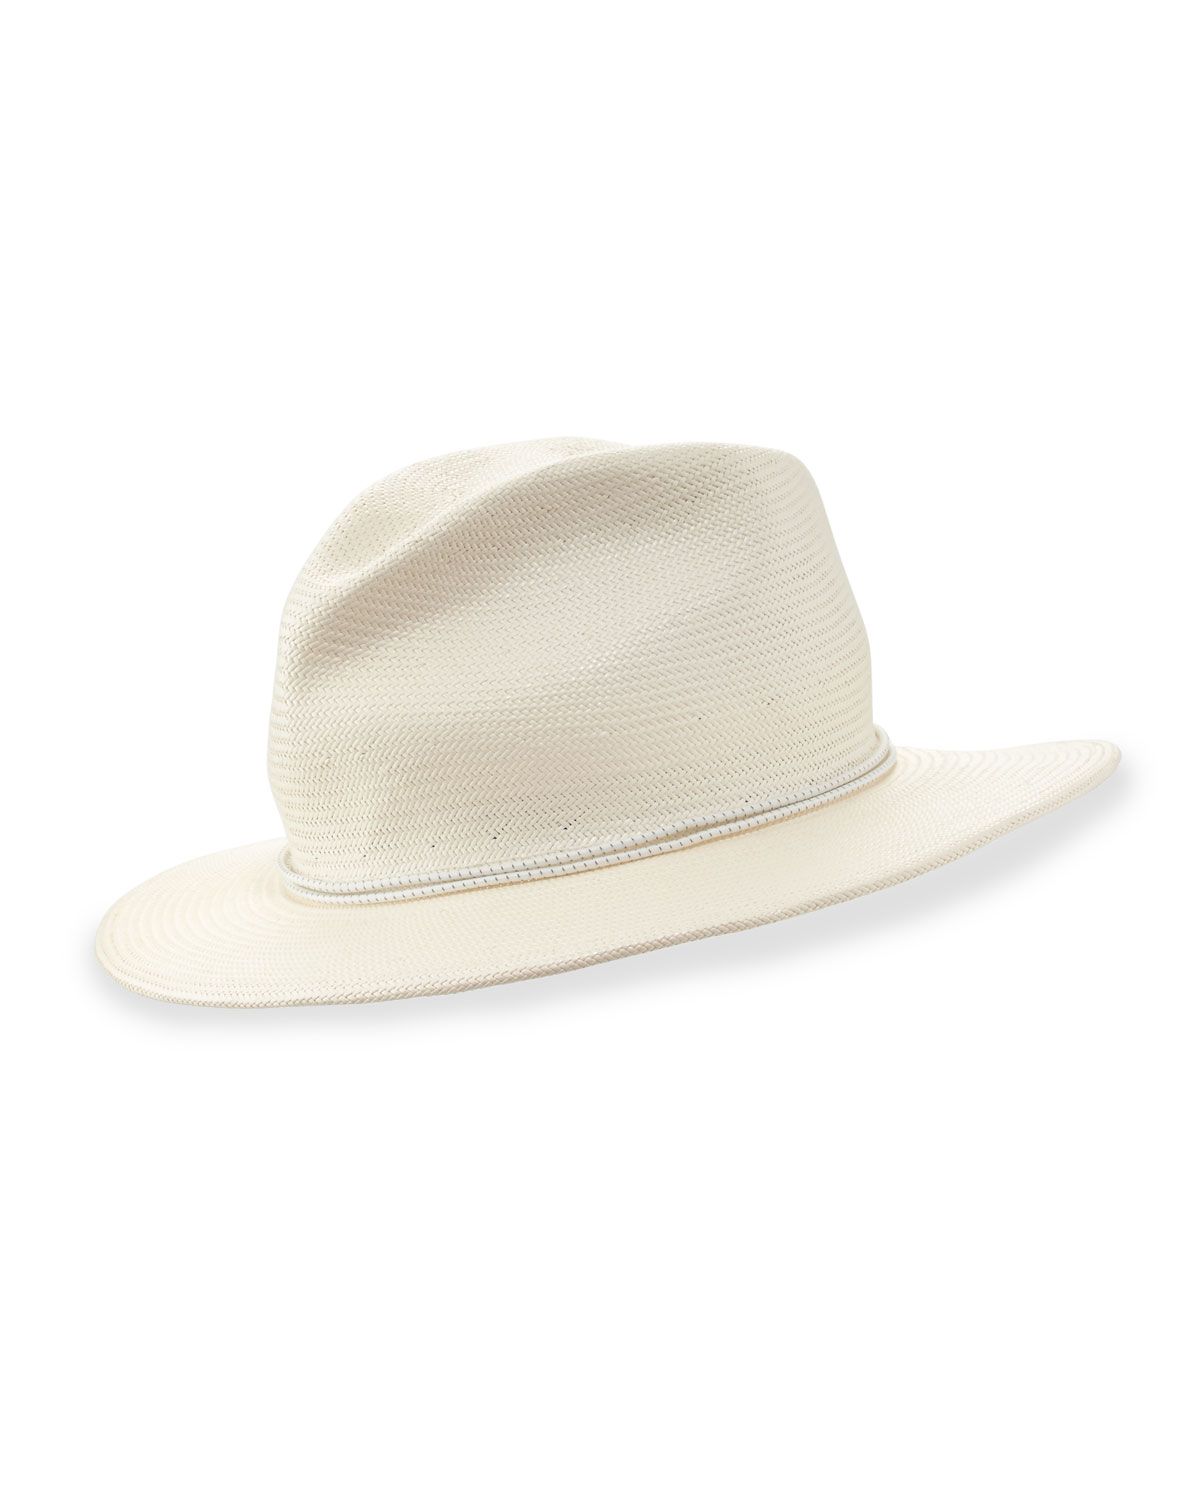 70bb7537459f8 Yestadt Millinery Nomad Packable Straw Fedora Hat in White for Men ...